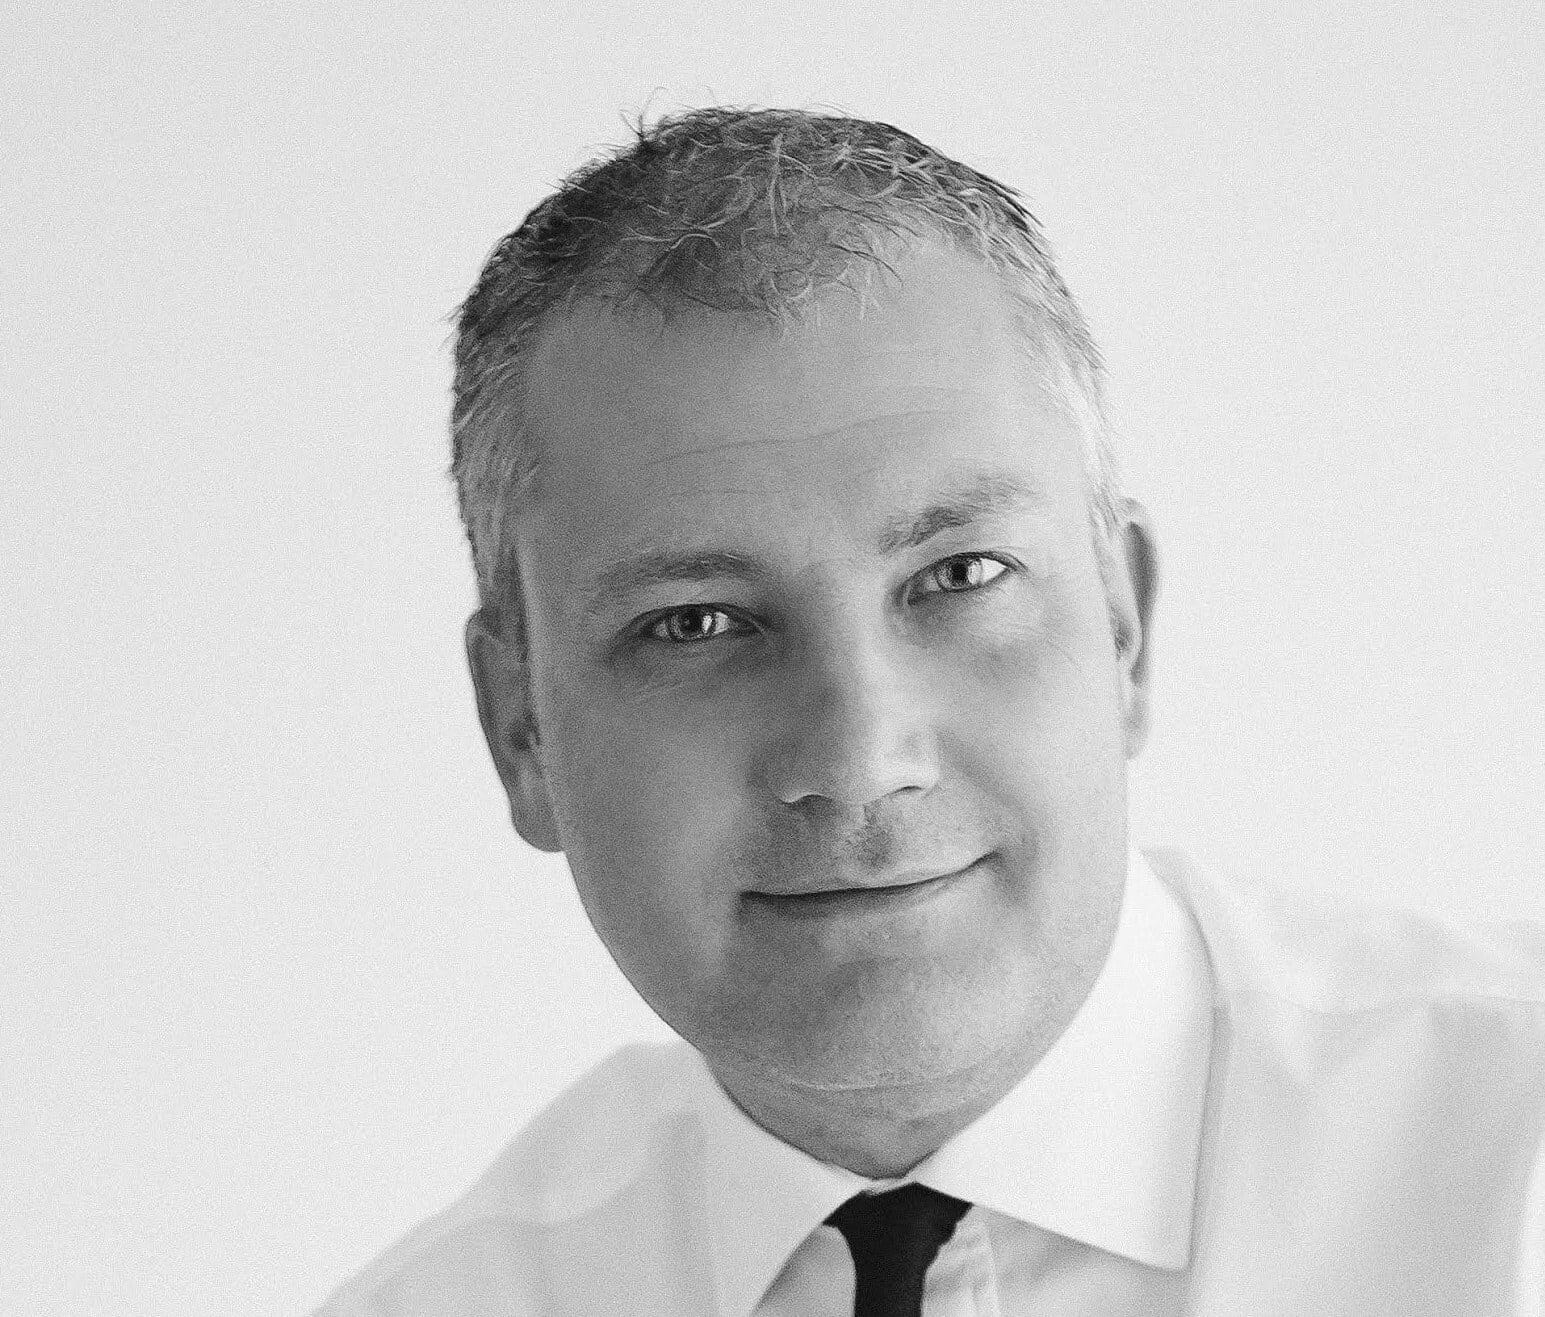 Russel Quirk - Founder and CEO of eMoov